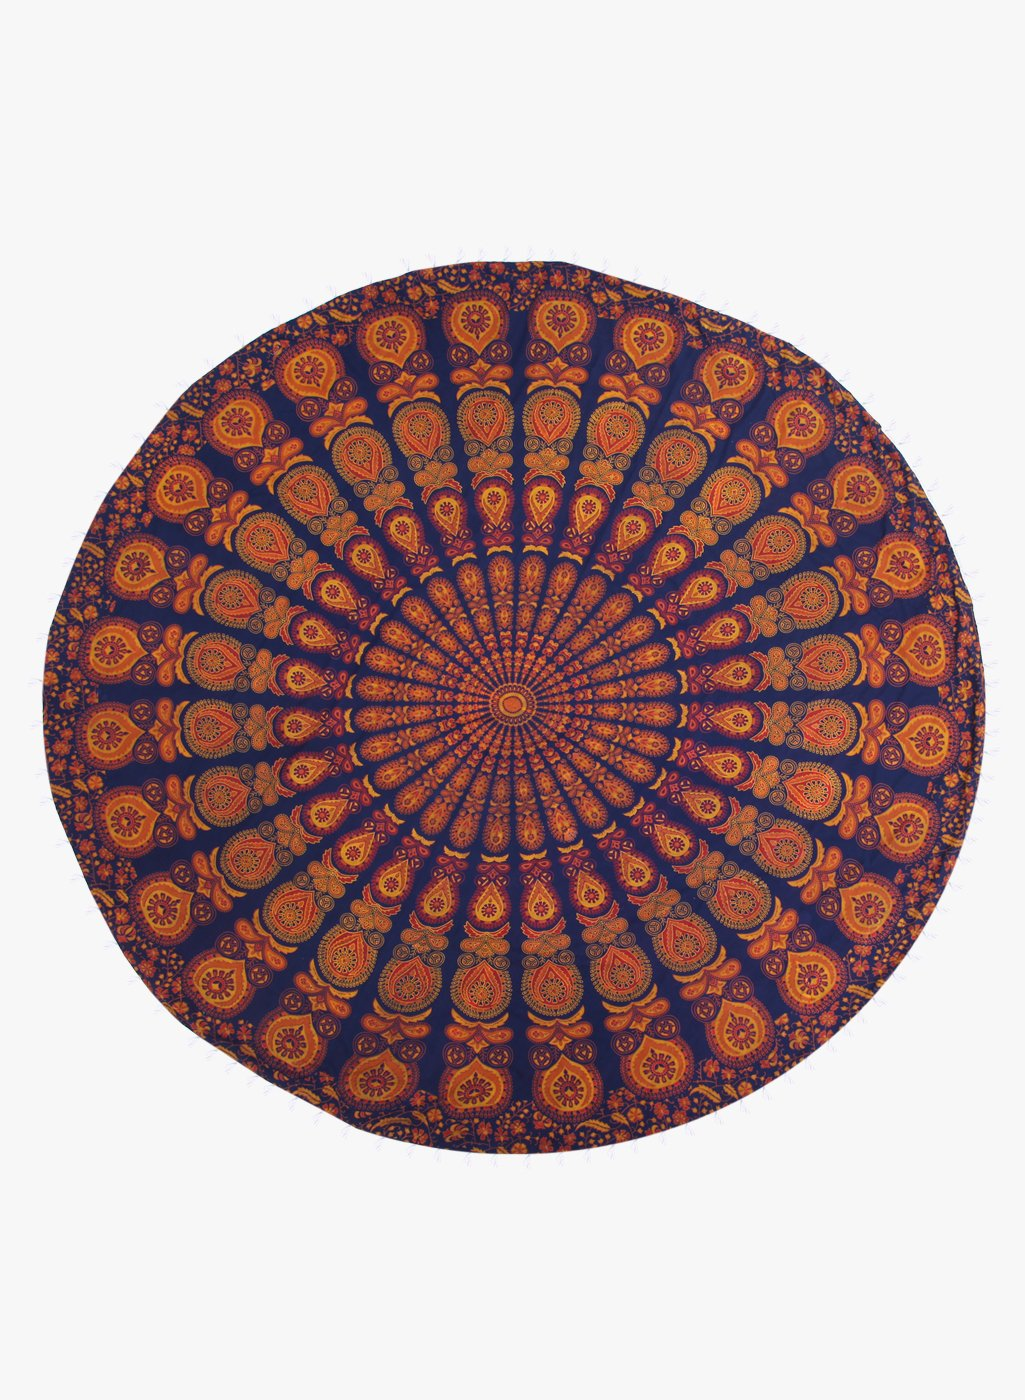 Spiritual Warrior yellow round towels are both fun and high quality. These round mandala towels are the best summer accessory for the beach, picnic blanket and as a throw.